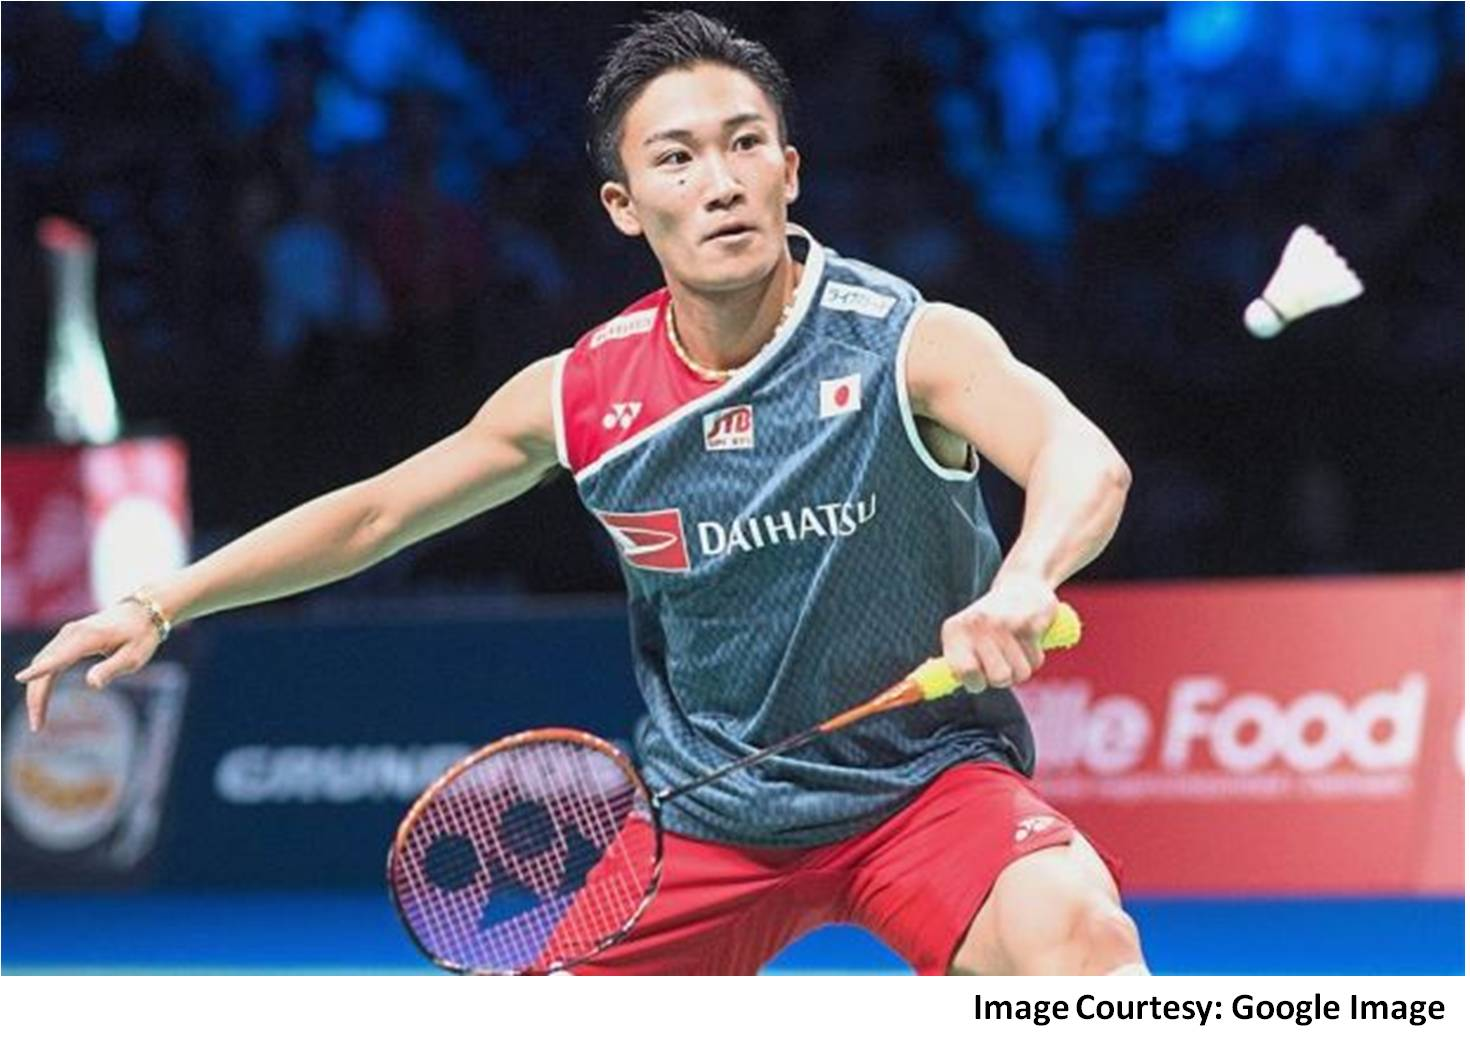 Kento_Momota_Best_Badminton_Player